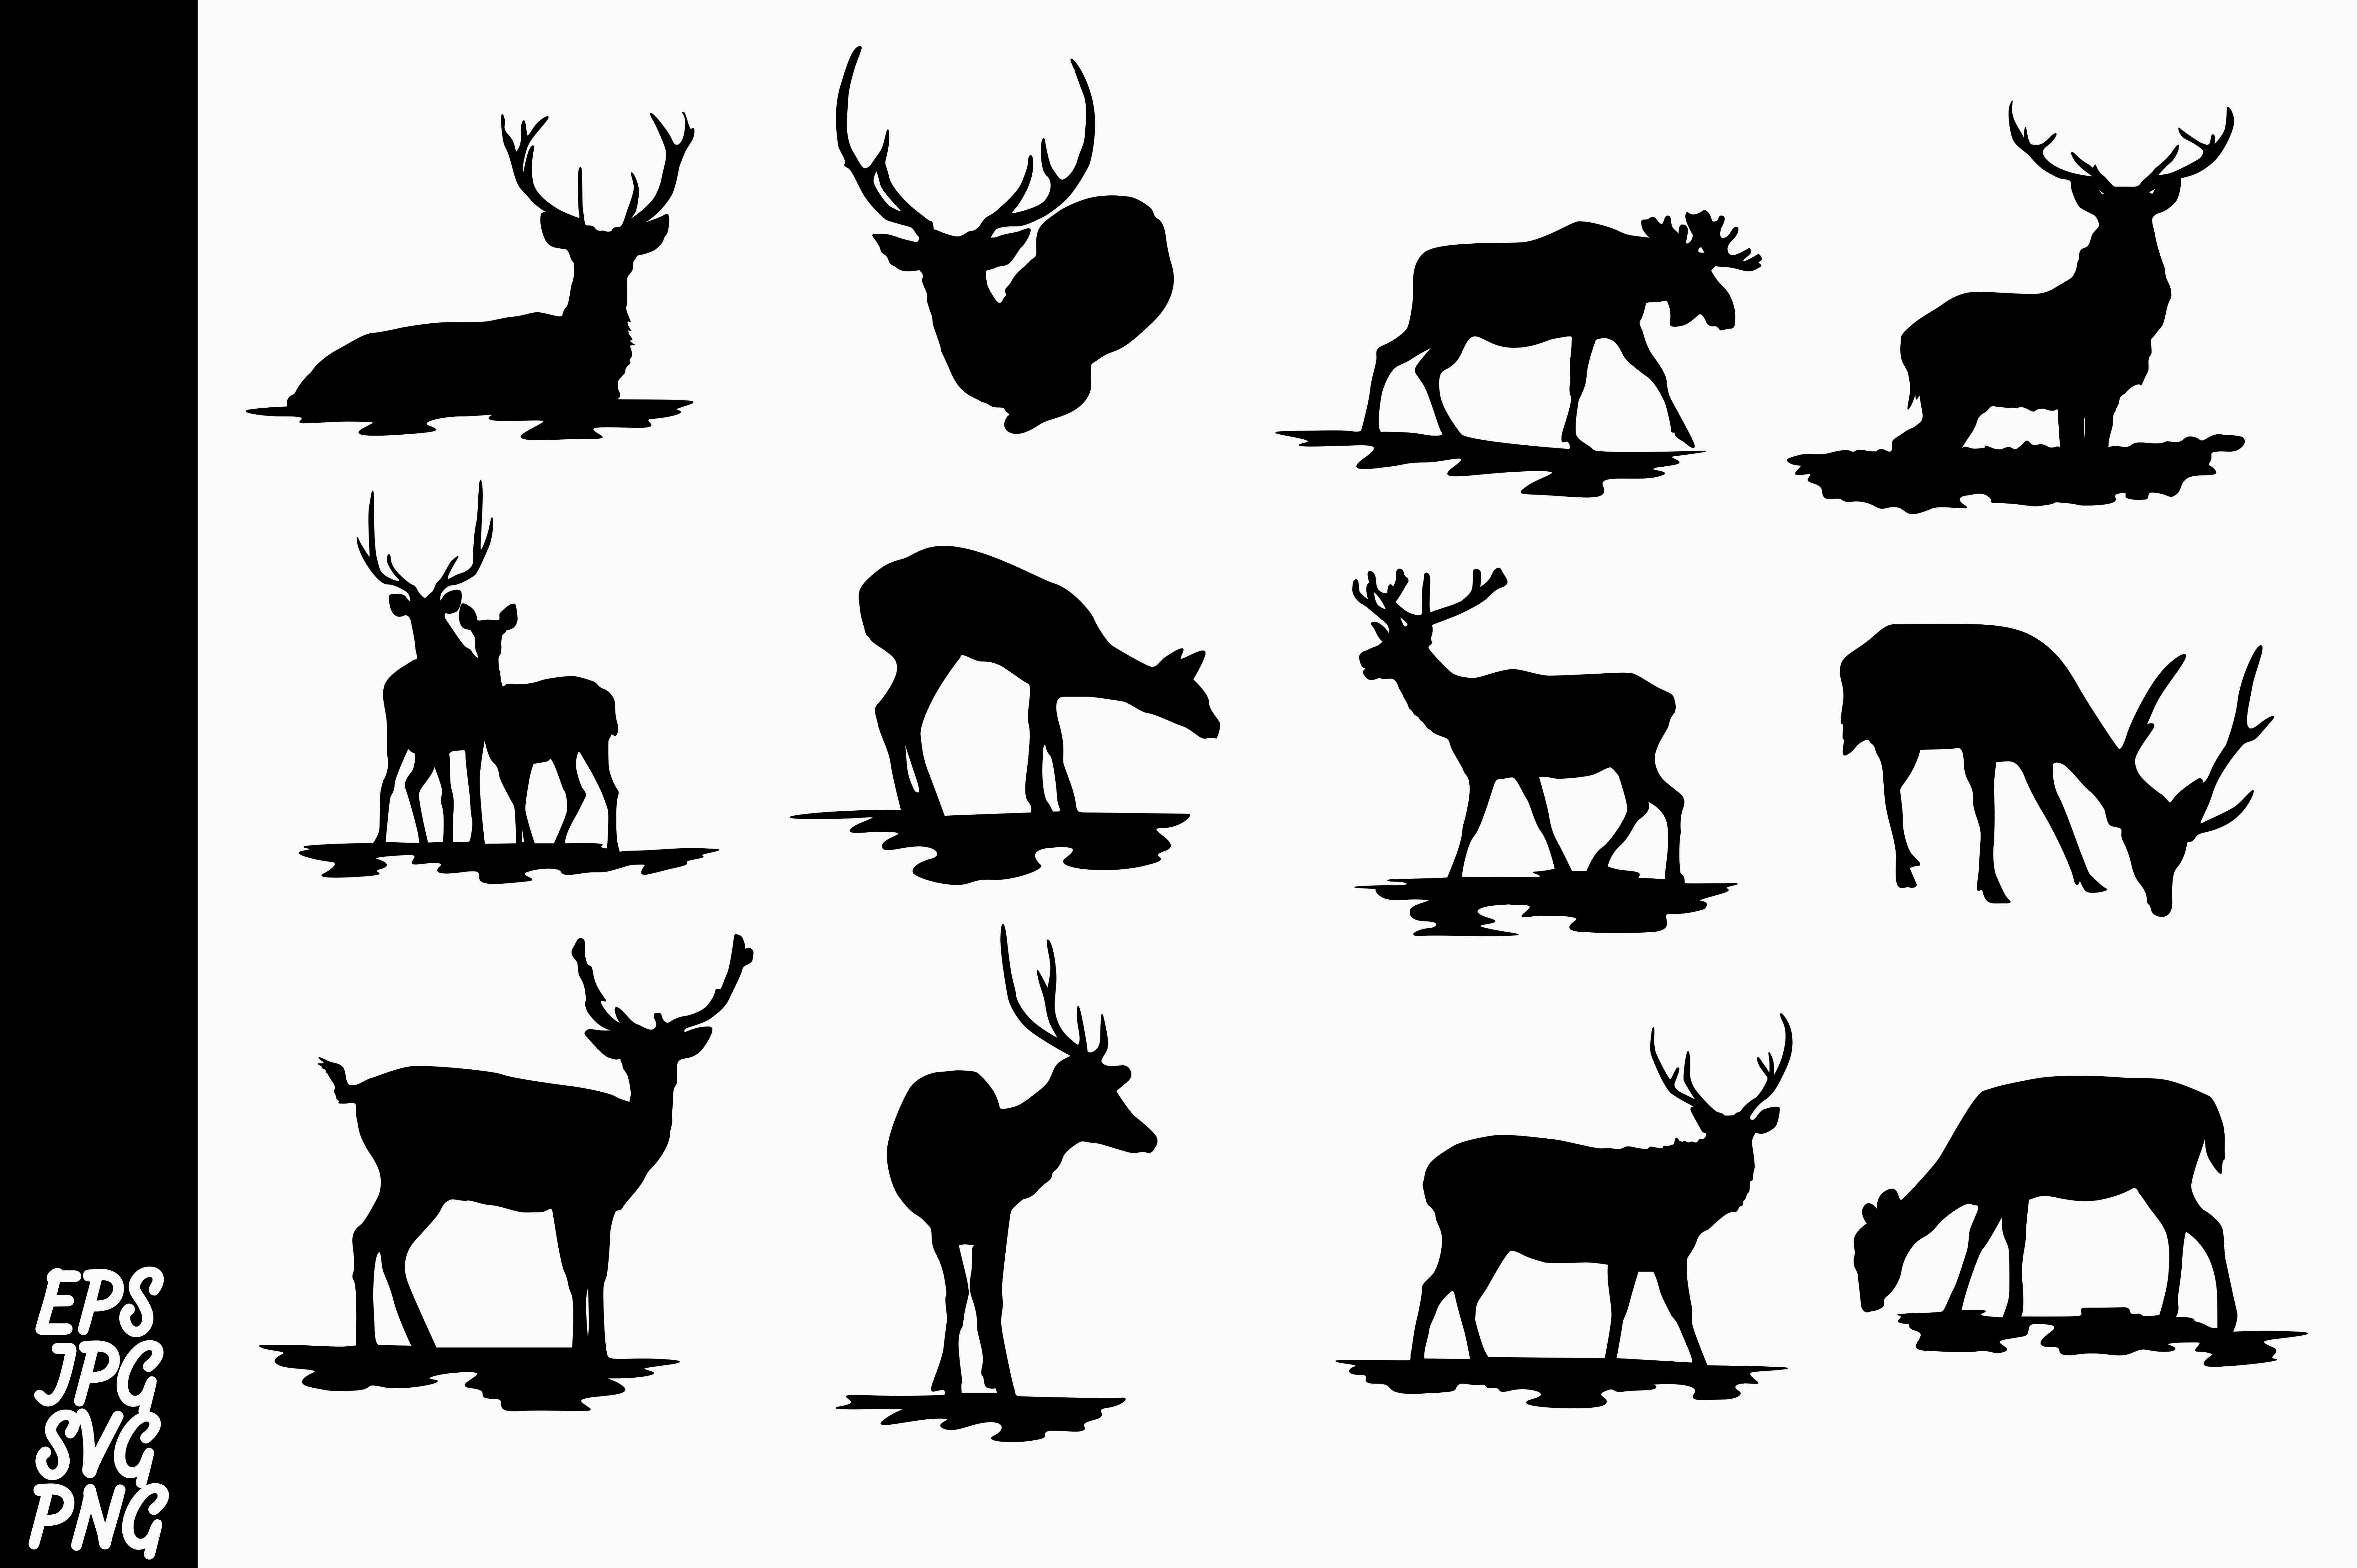 Download Free Deer Silhouette Svg Bundle Graphic By Arief Sapta Adjie for Cricut Explore, Silhouette and other cutting machines.